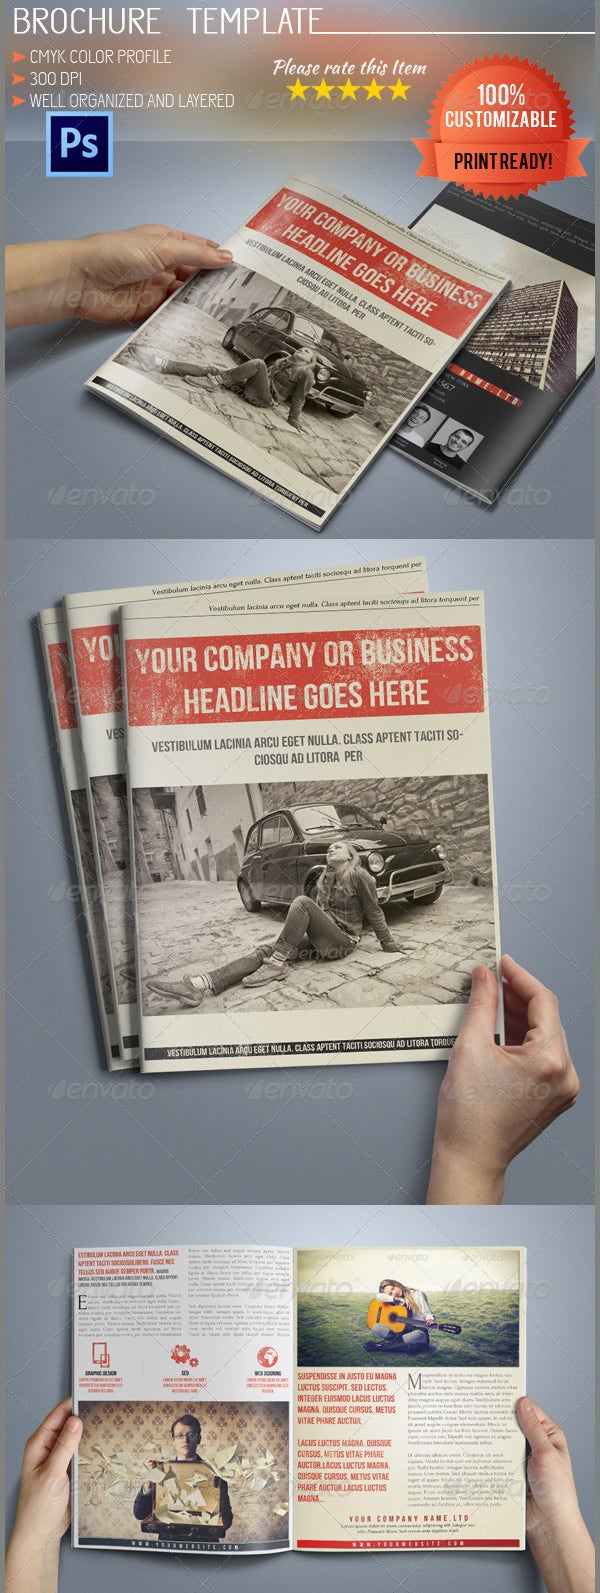 a5 retro bi fold business brochure